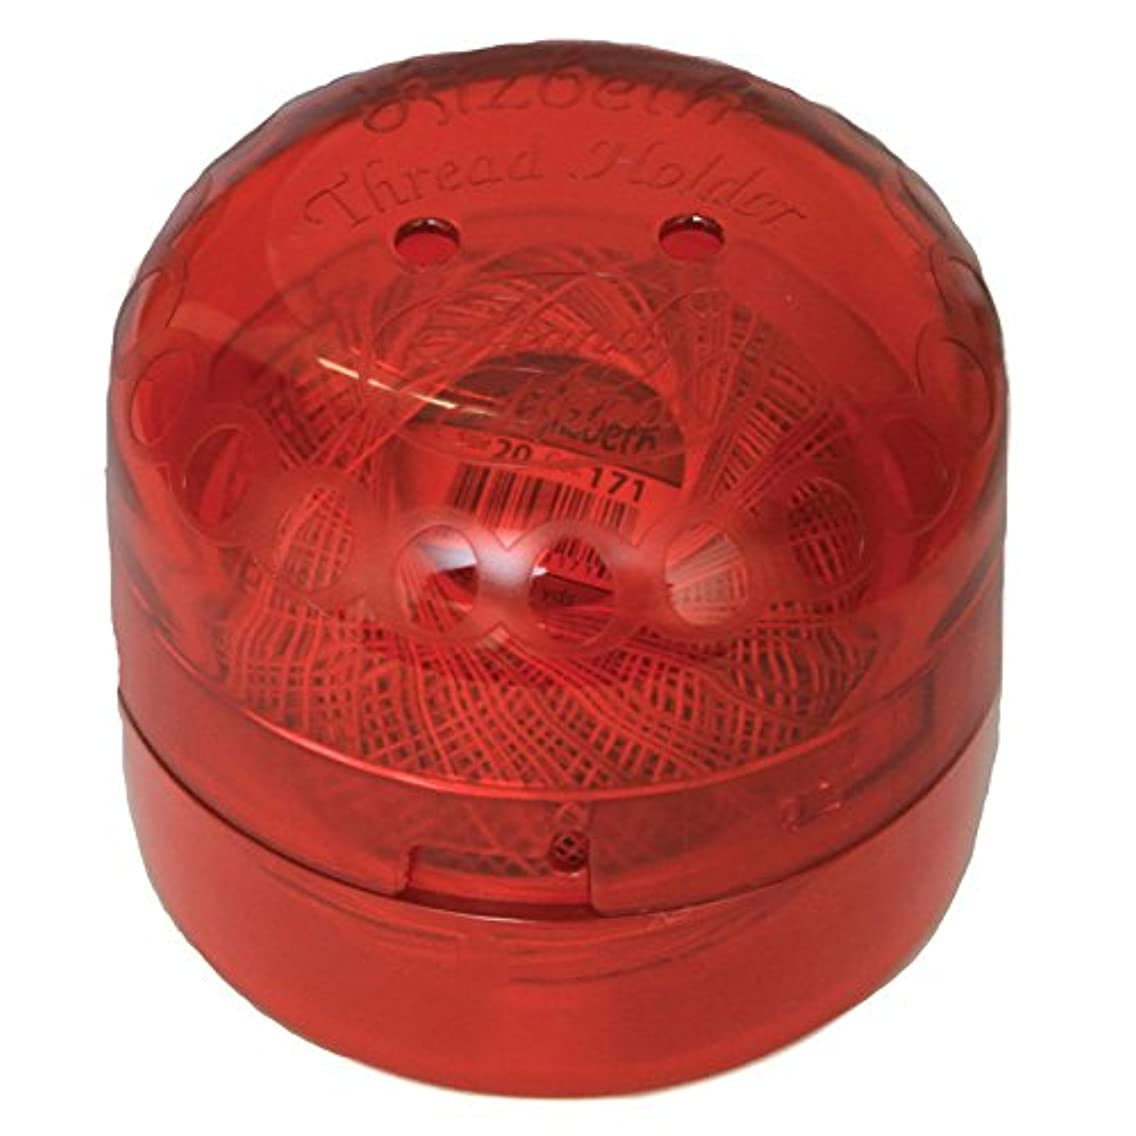 Handy Hands HH5050 Lizbeth Thread Holder, Red